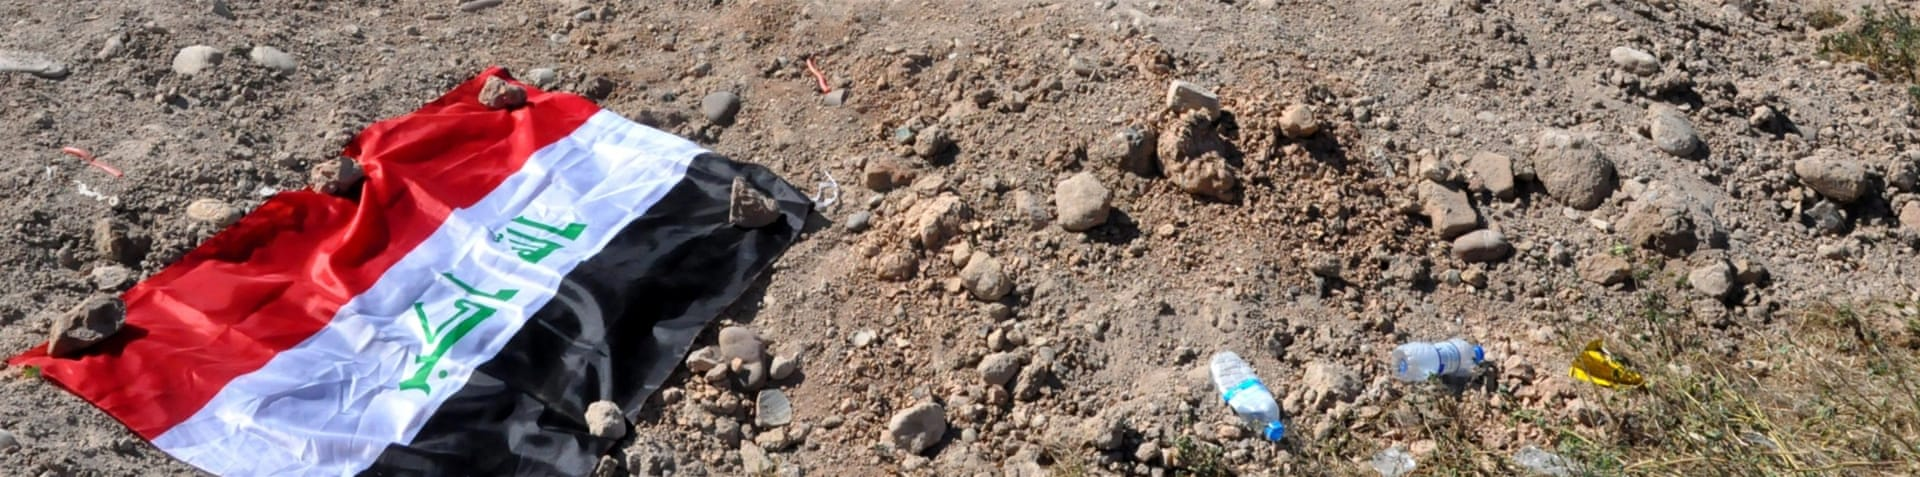 The victims' remains were buried in mass graves [Stringer/Reuters]